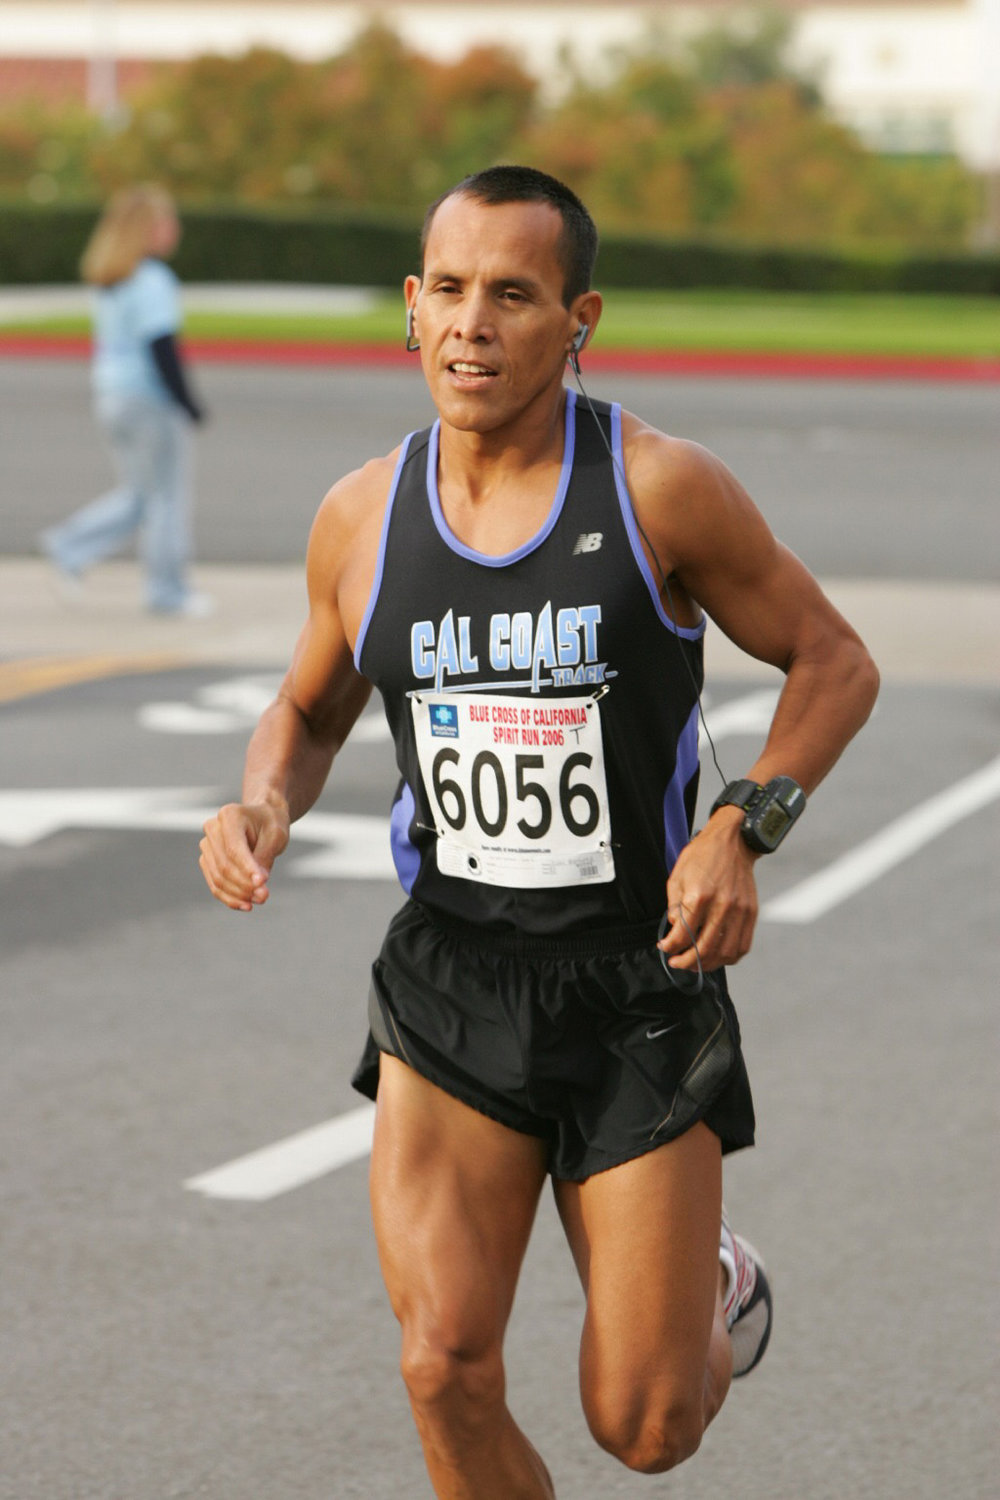 Juan Ramirez running Spirit Run 2006. Juan won the 10k and also raced the 5k that year.